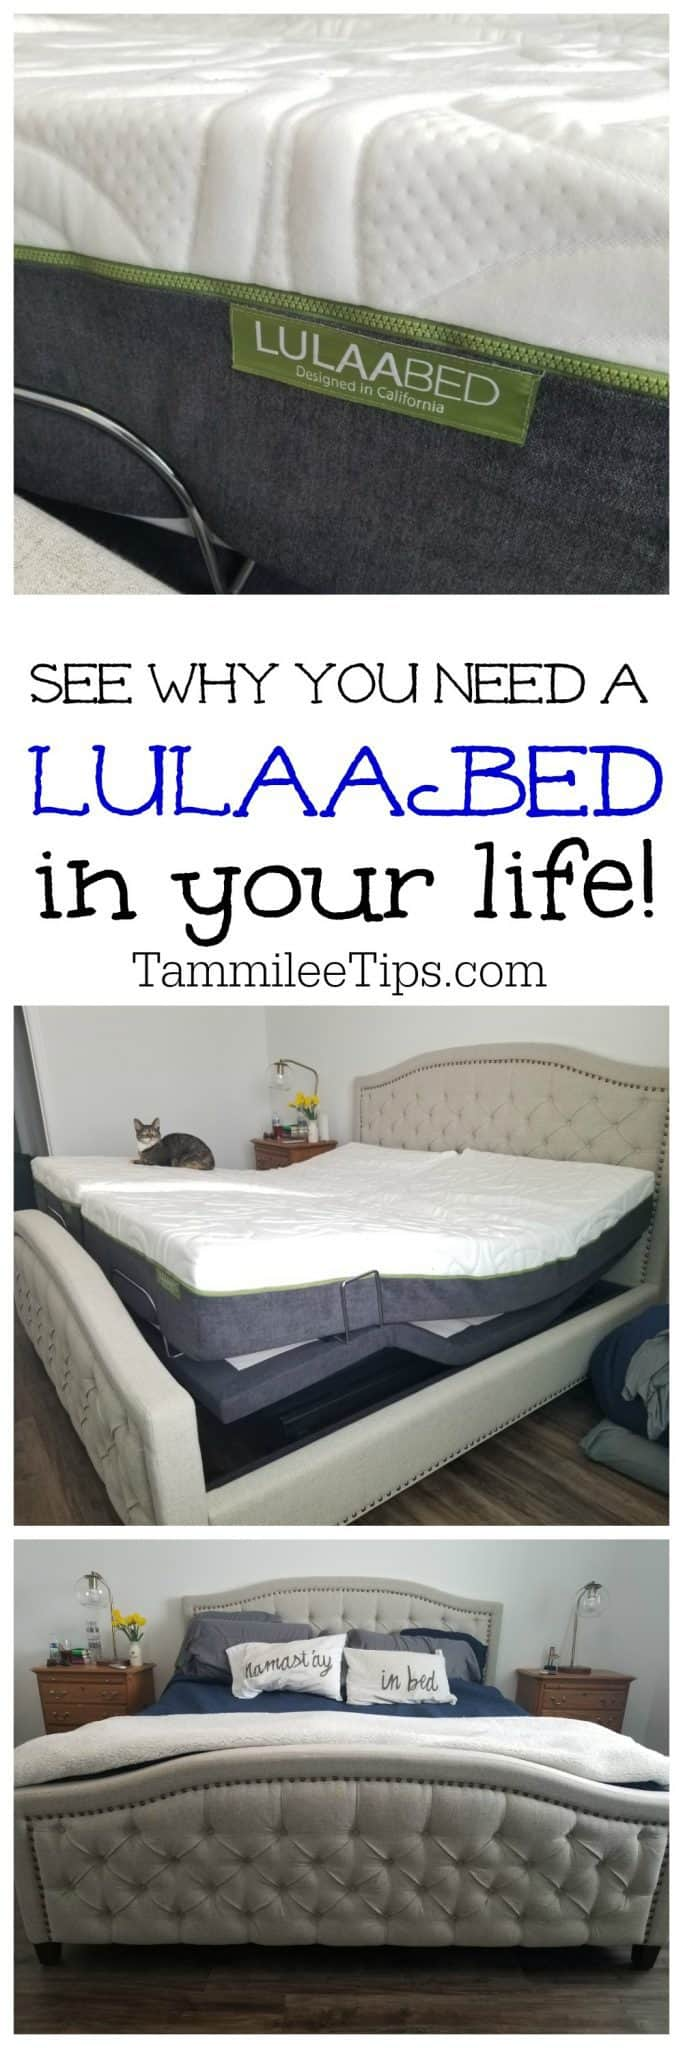 See why you need a LulaaBED from Sam's Club in your life! Fully adjustable mattress, remote control, massage and more!